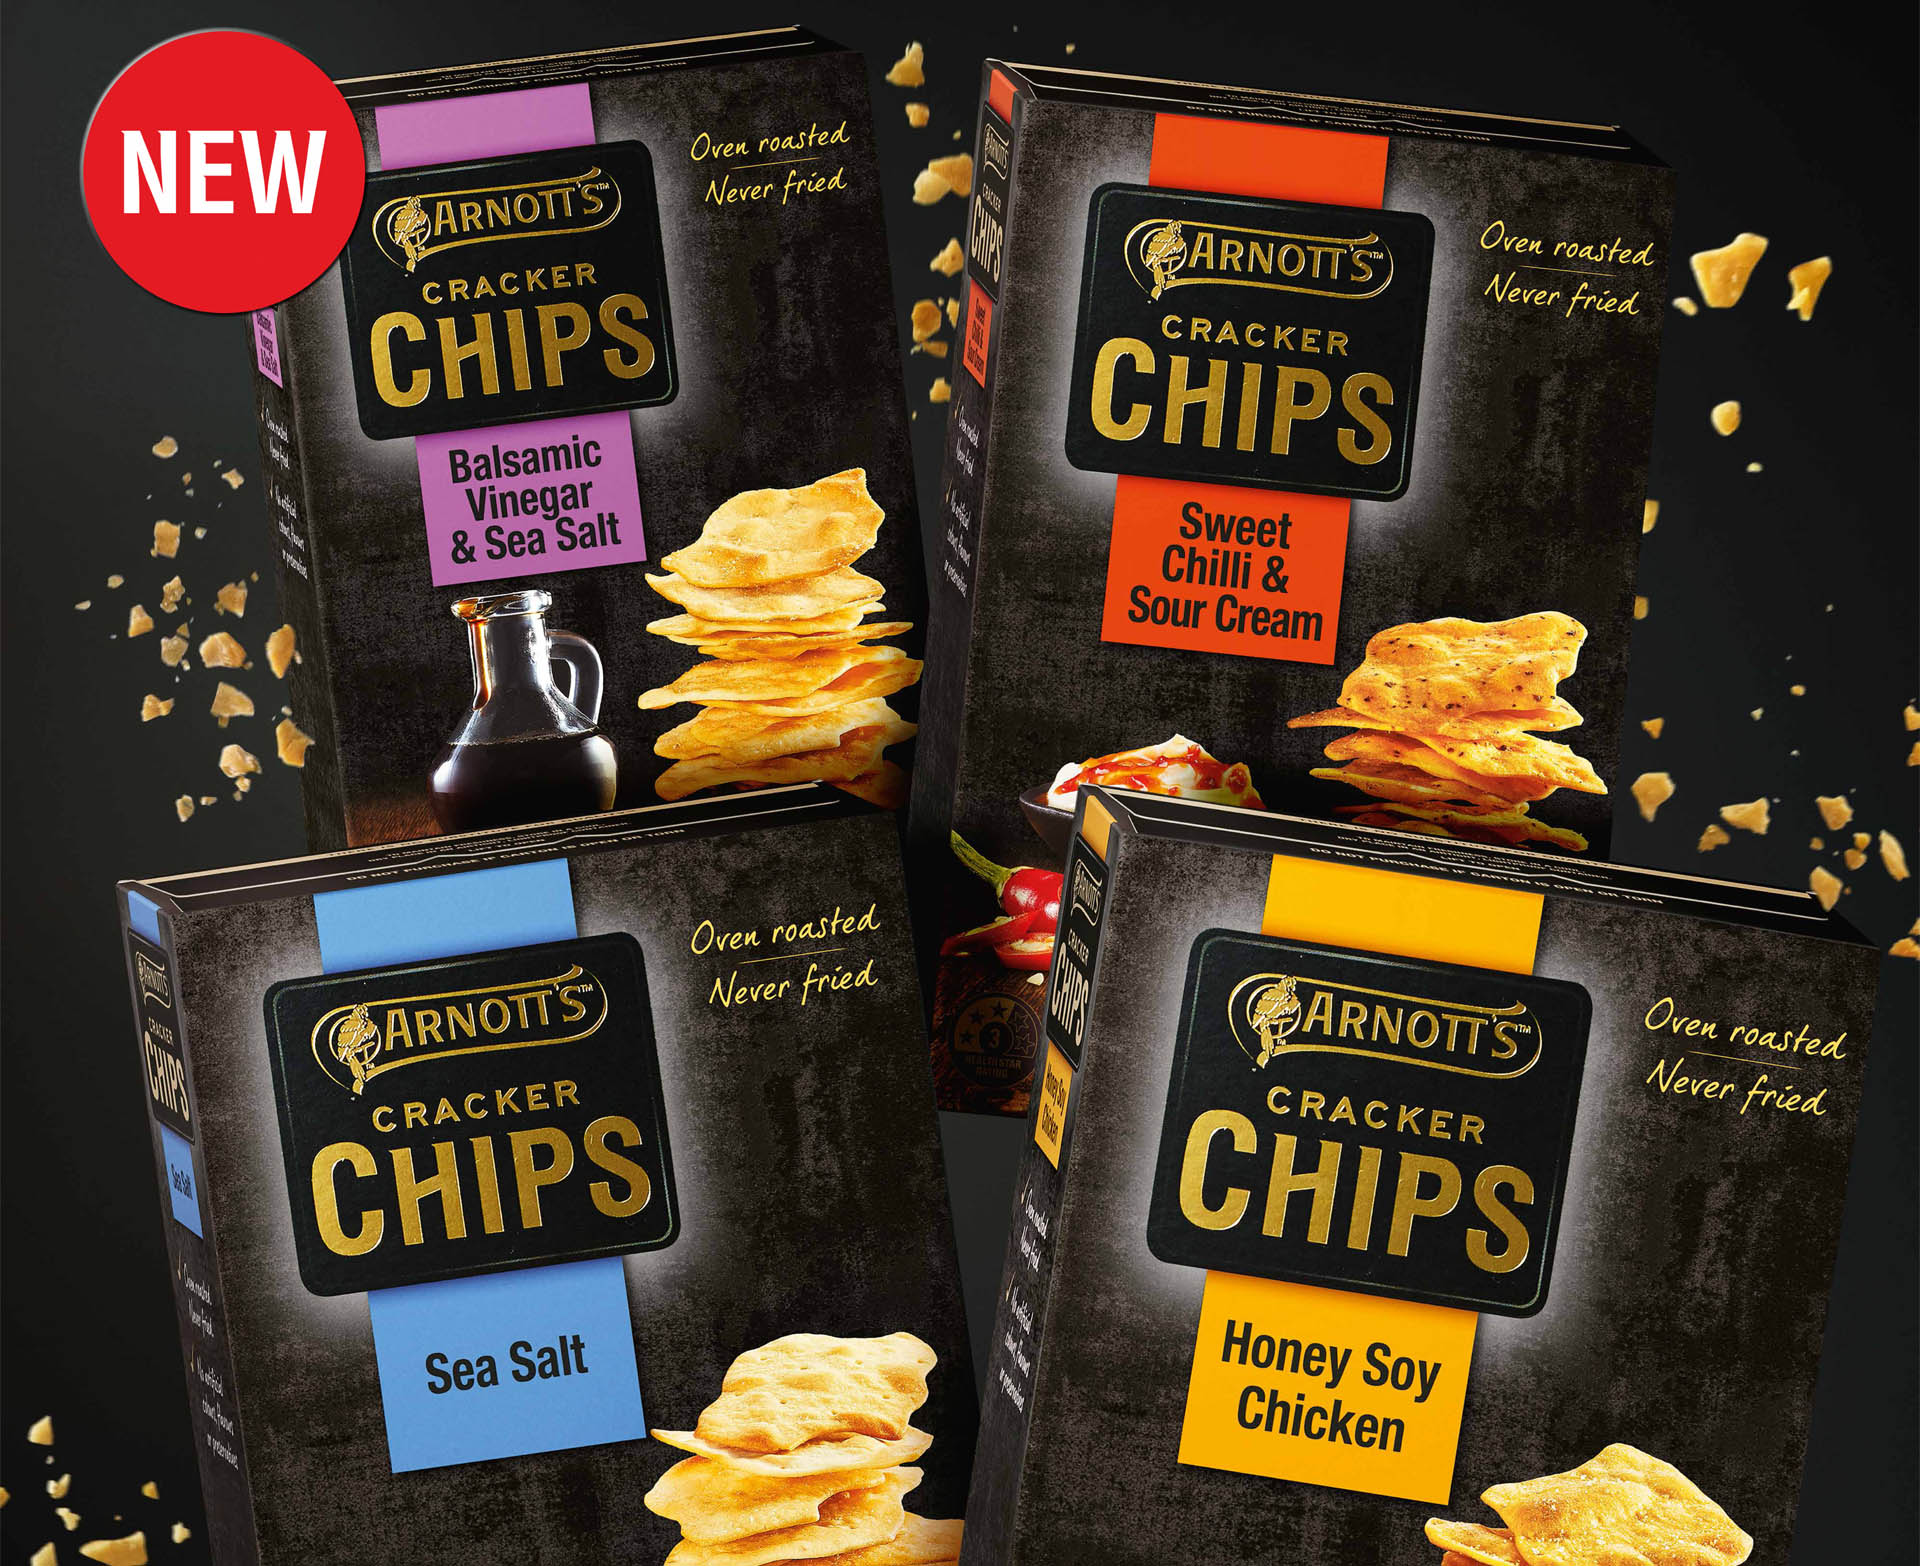 Arnotts Cracker Chips